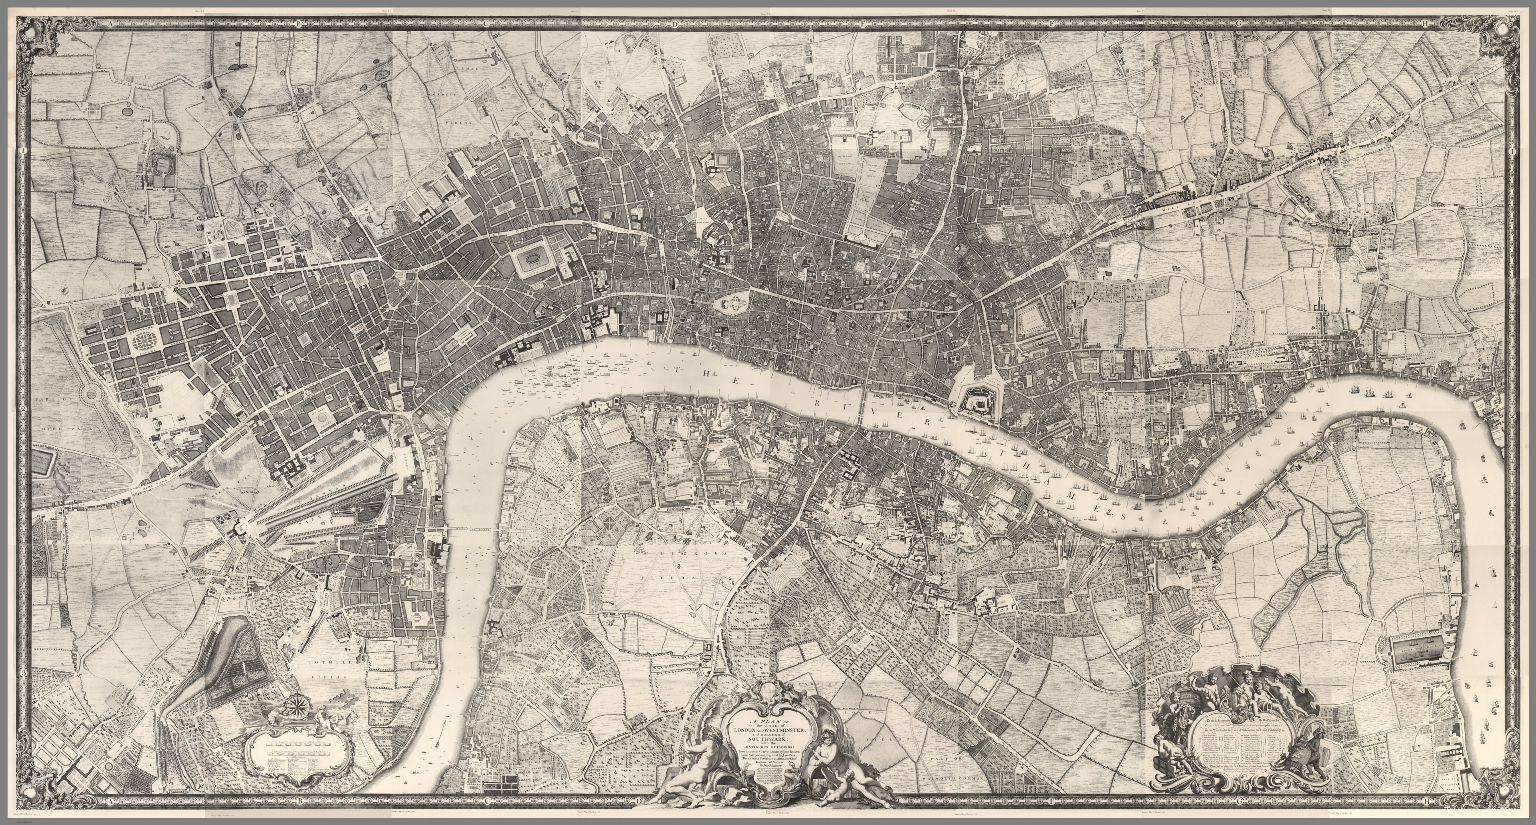 Composite Map: (Facsimile) Rocque's Map of London. 1746.